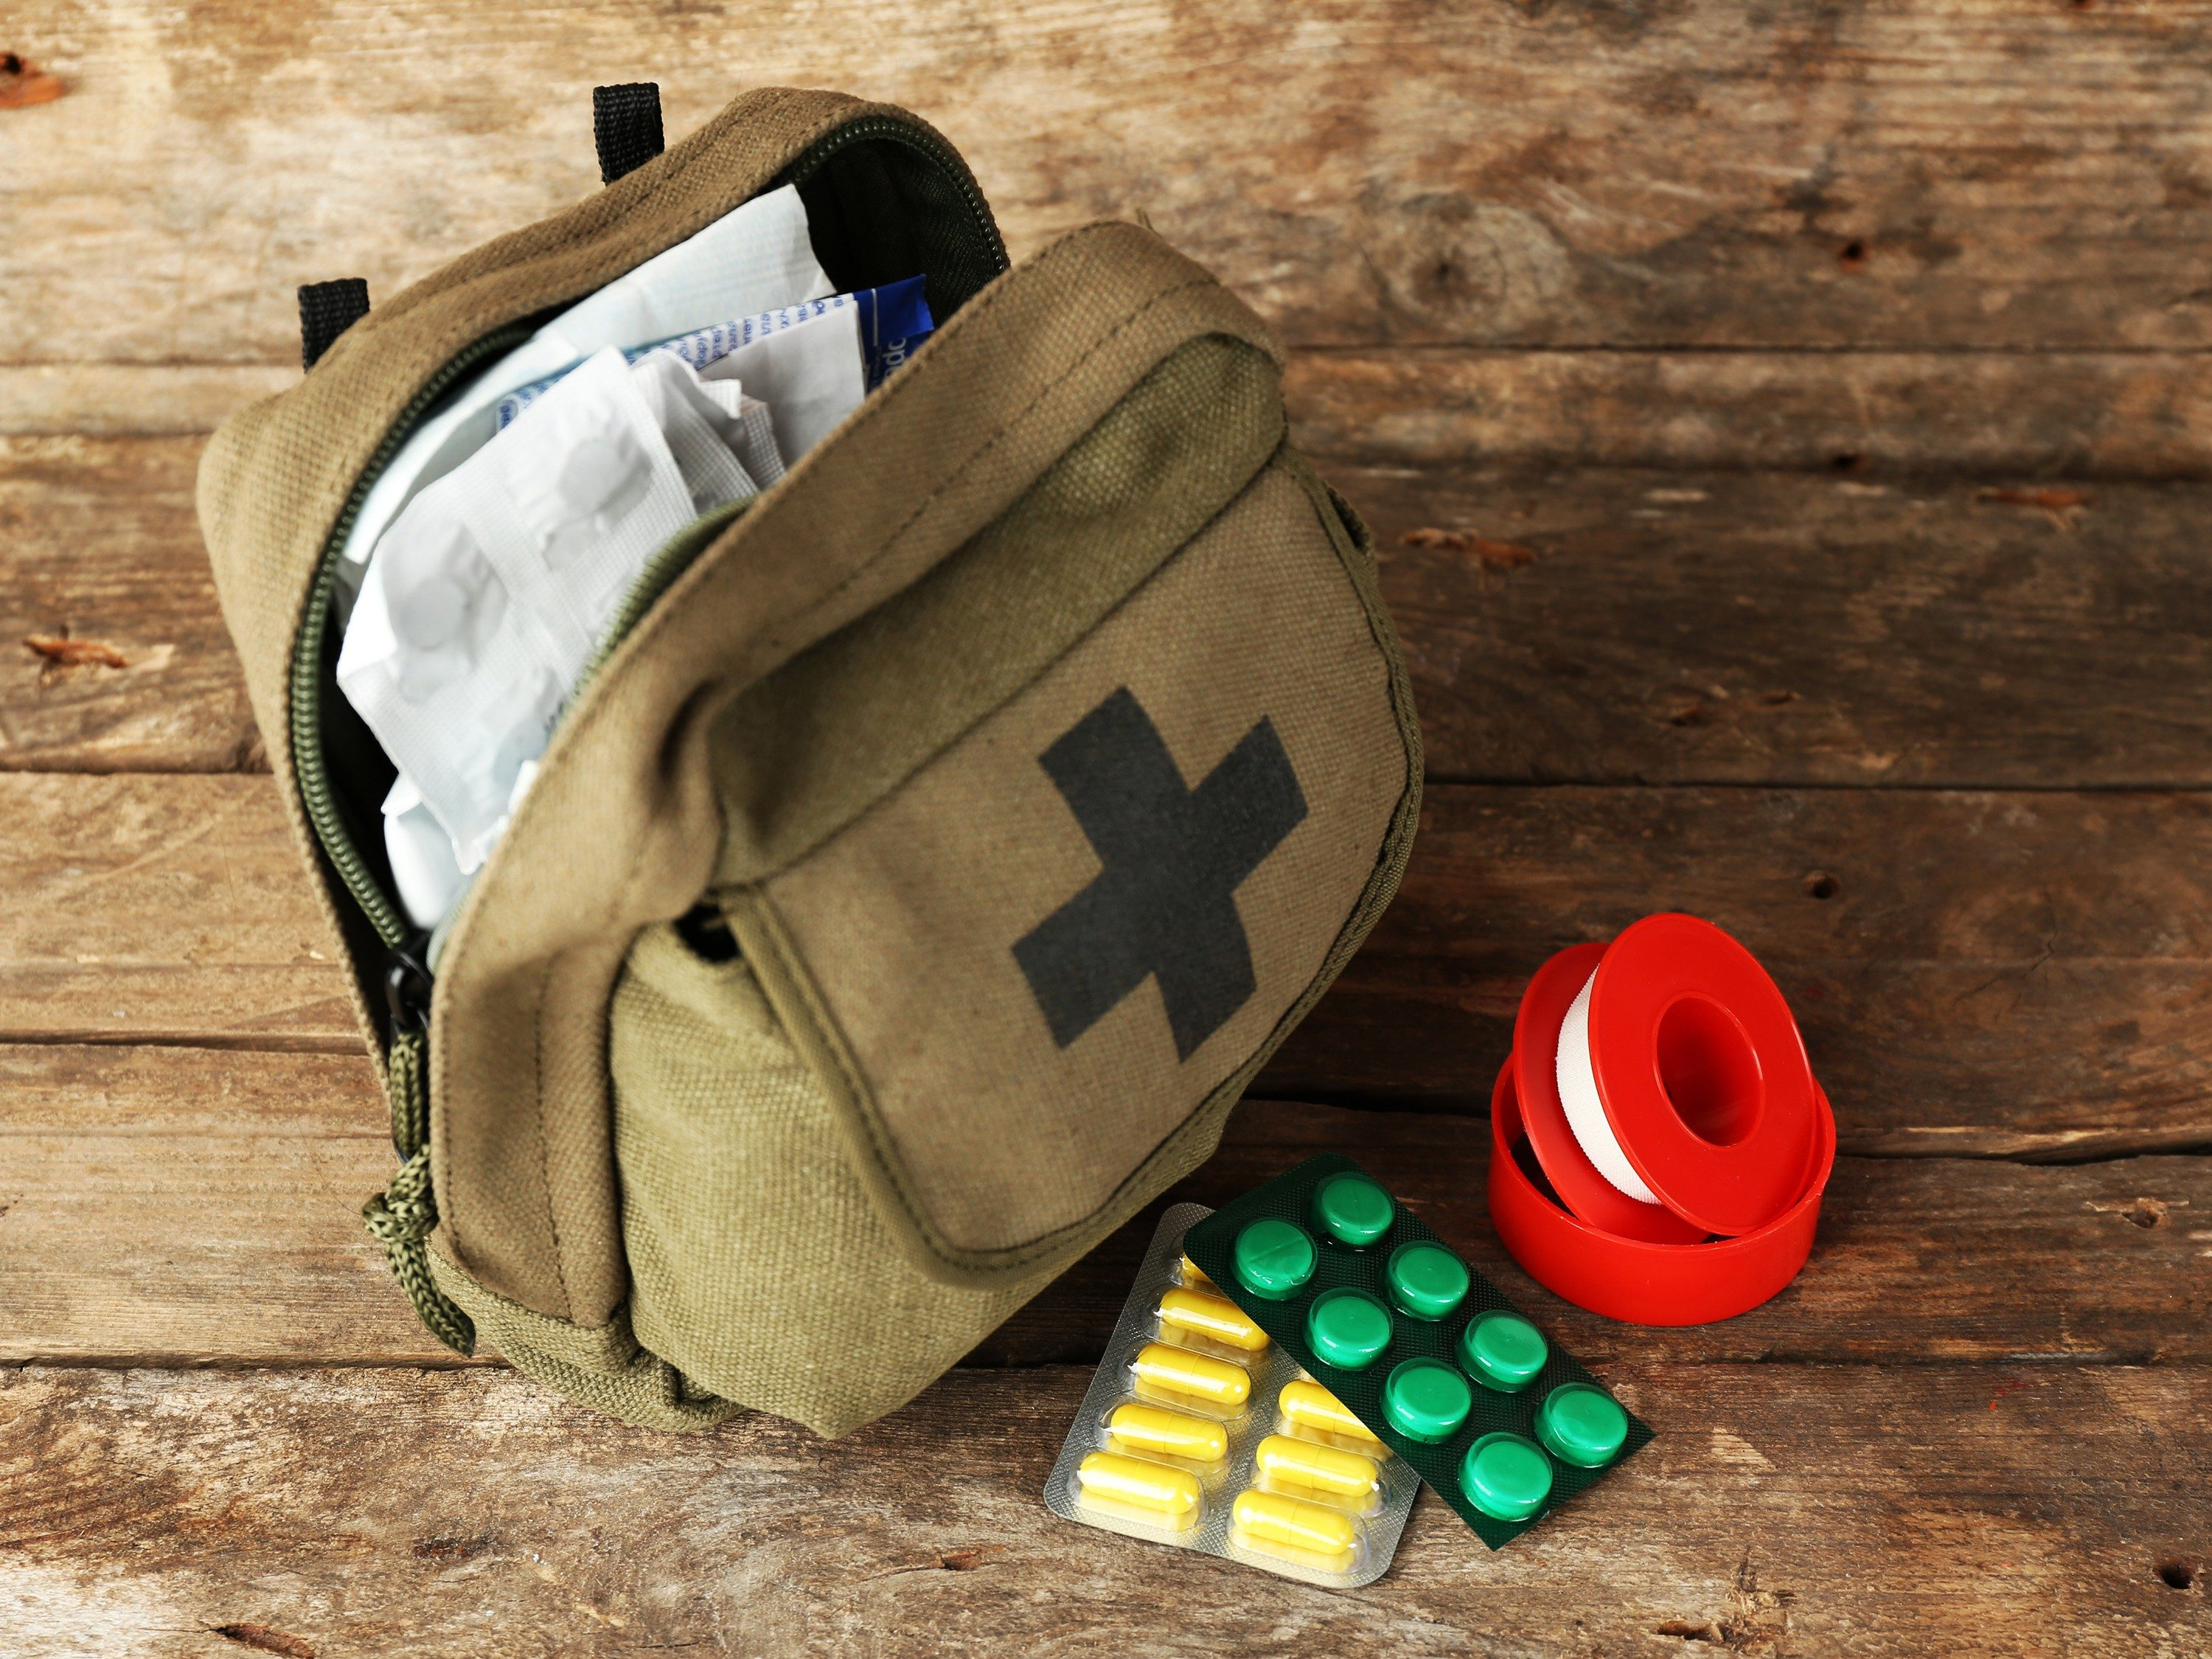 Useful medication for first-aid kits